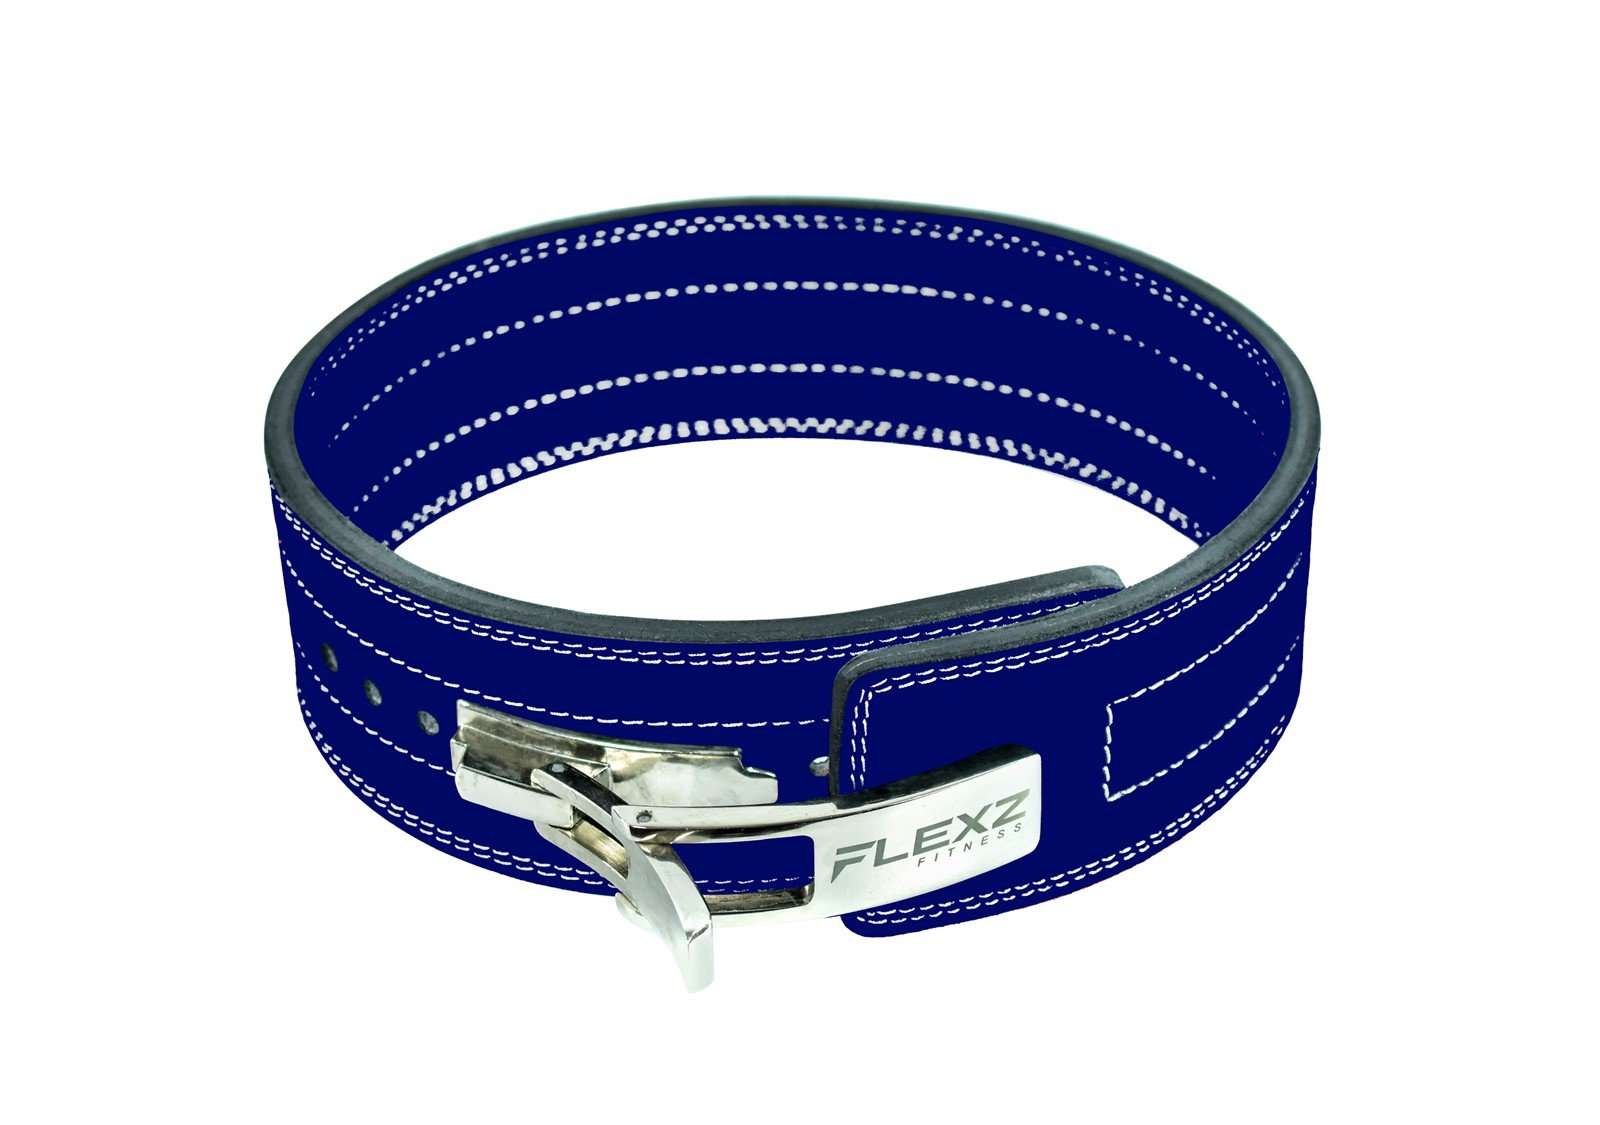 Flexz Fitness Lever Buckle Powerlifting Belt 10mm Weight Lifting Blue X Large by Flexz Fitness (Image #2)